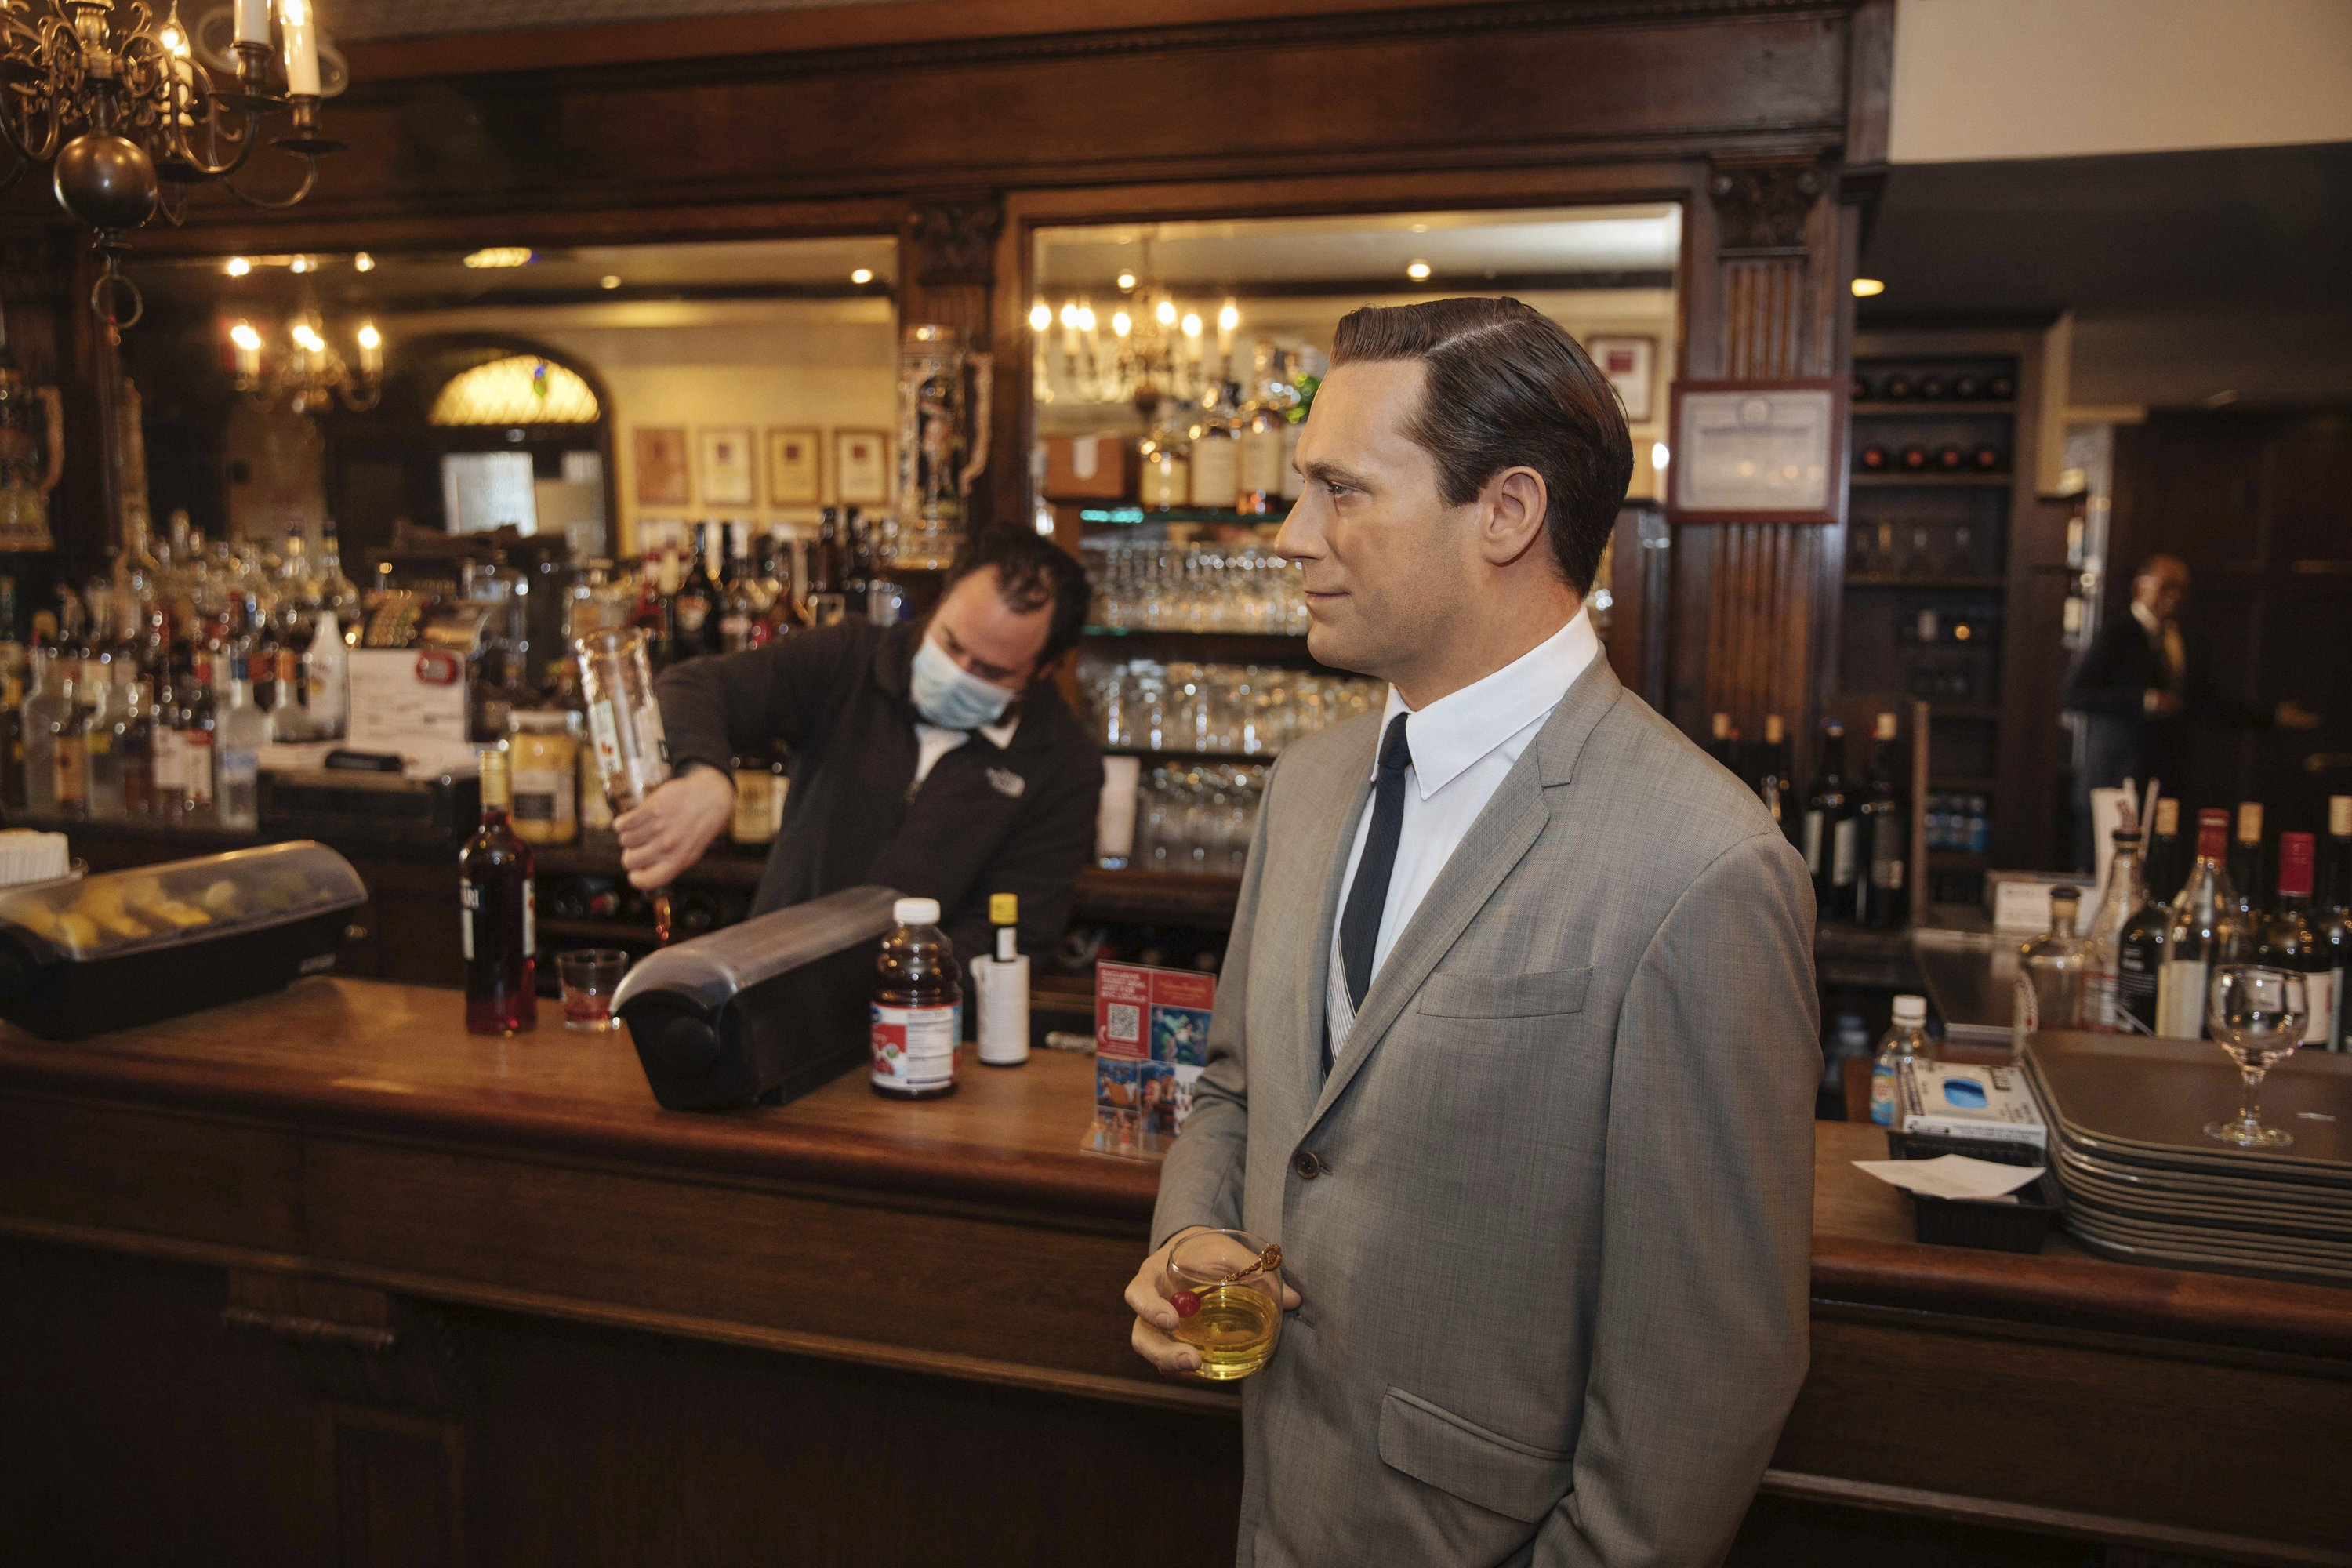 NYC steakhouse stunt: A wax Don Draper hanging at the bar - Associated Press